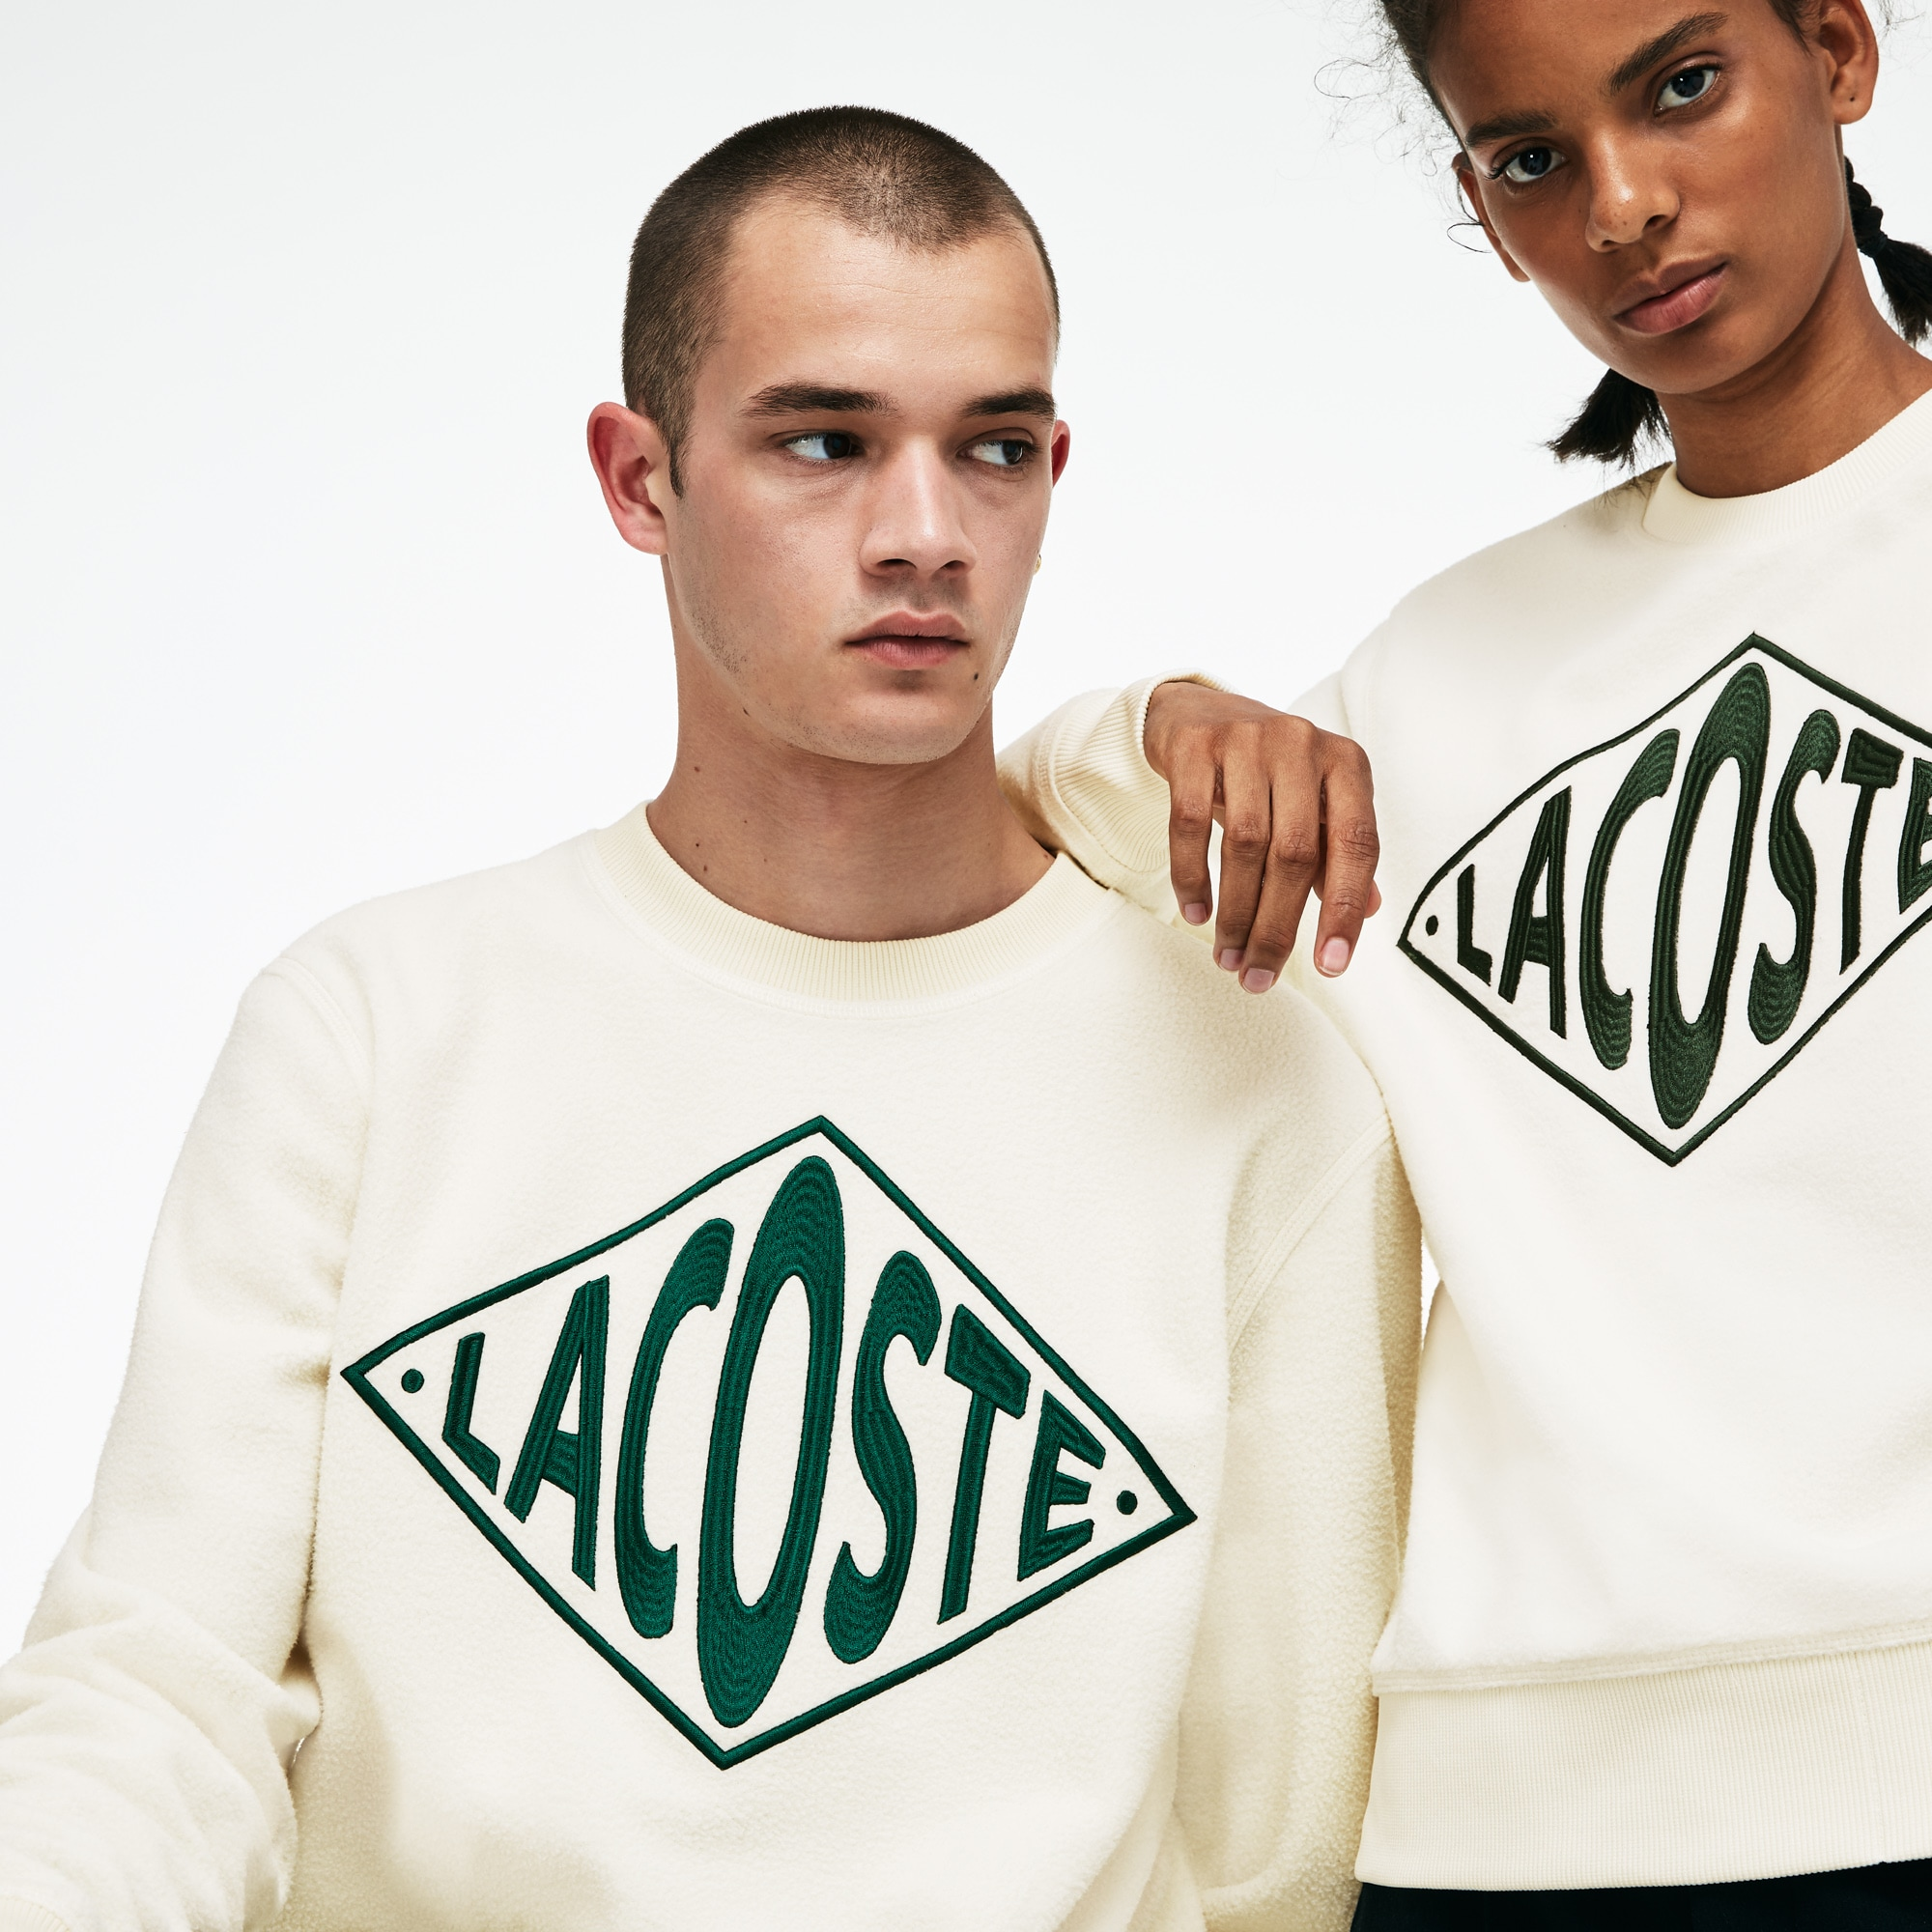 Unisex Lacoste LIVE Crew Neck XL Embroidery Fleece Sweatshirt